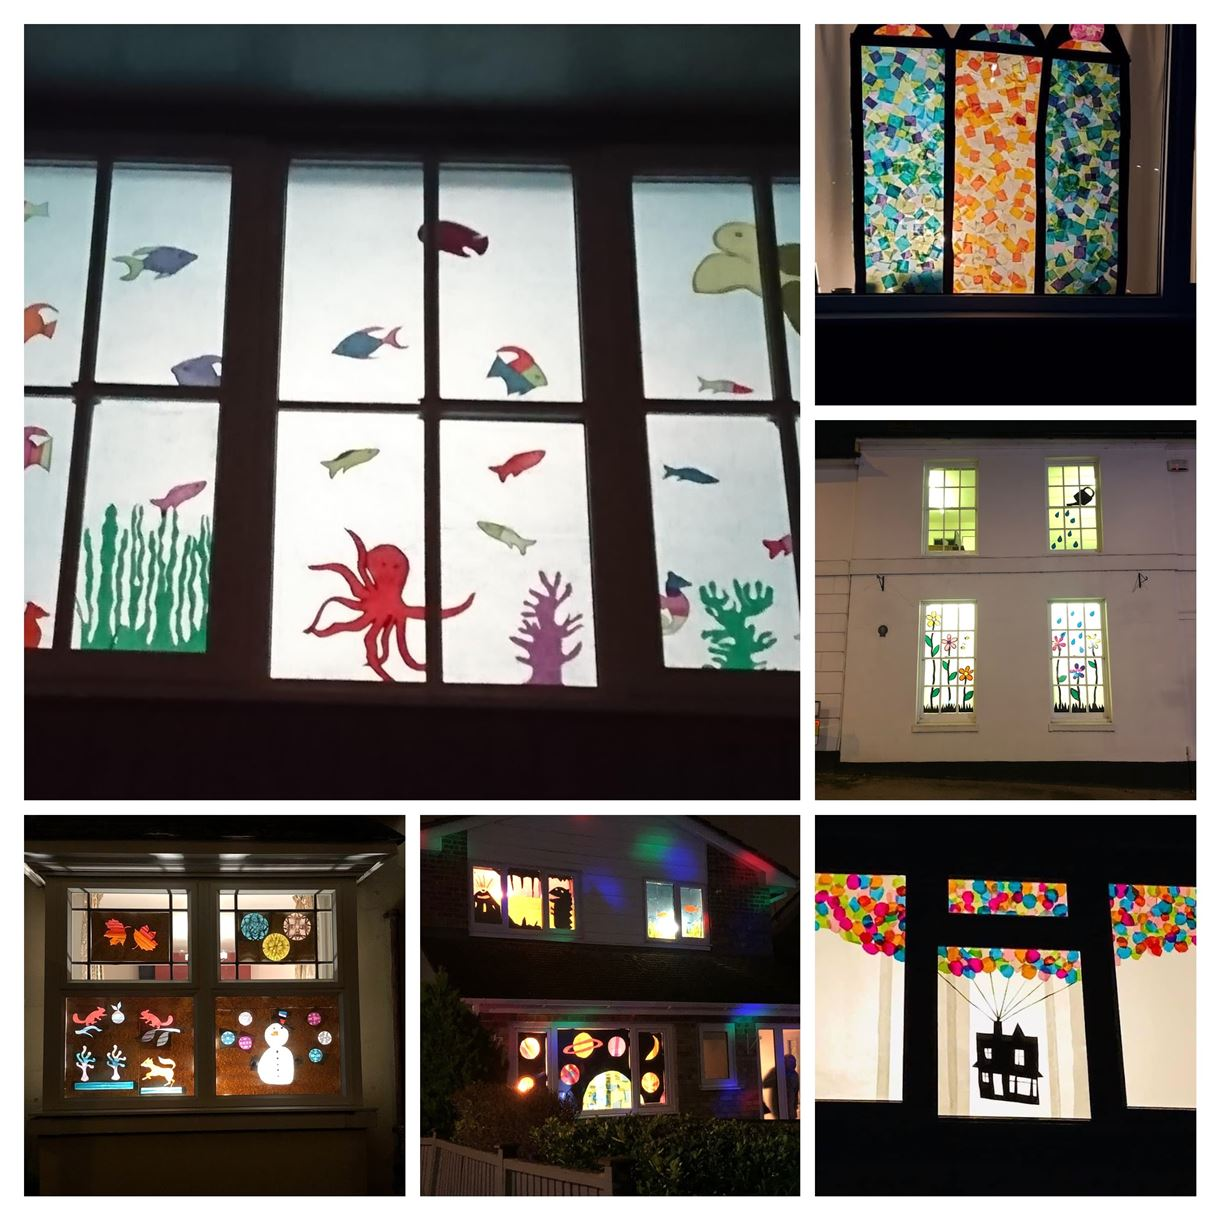 A selection of windows in the Winter Wanderland